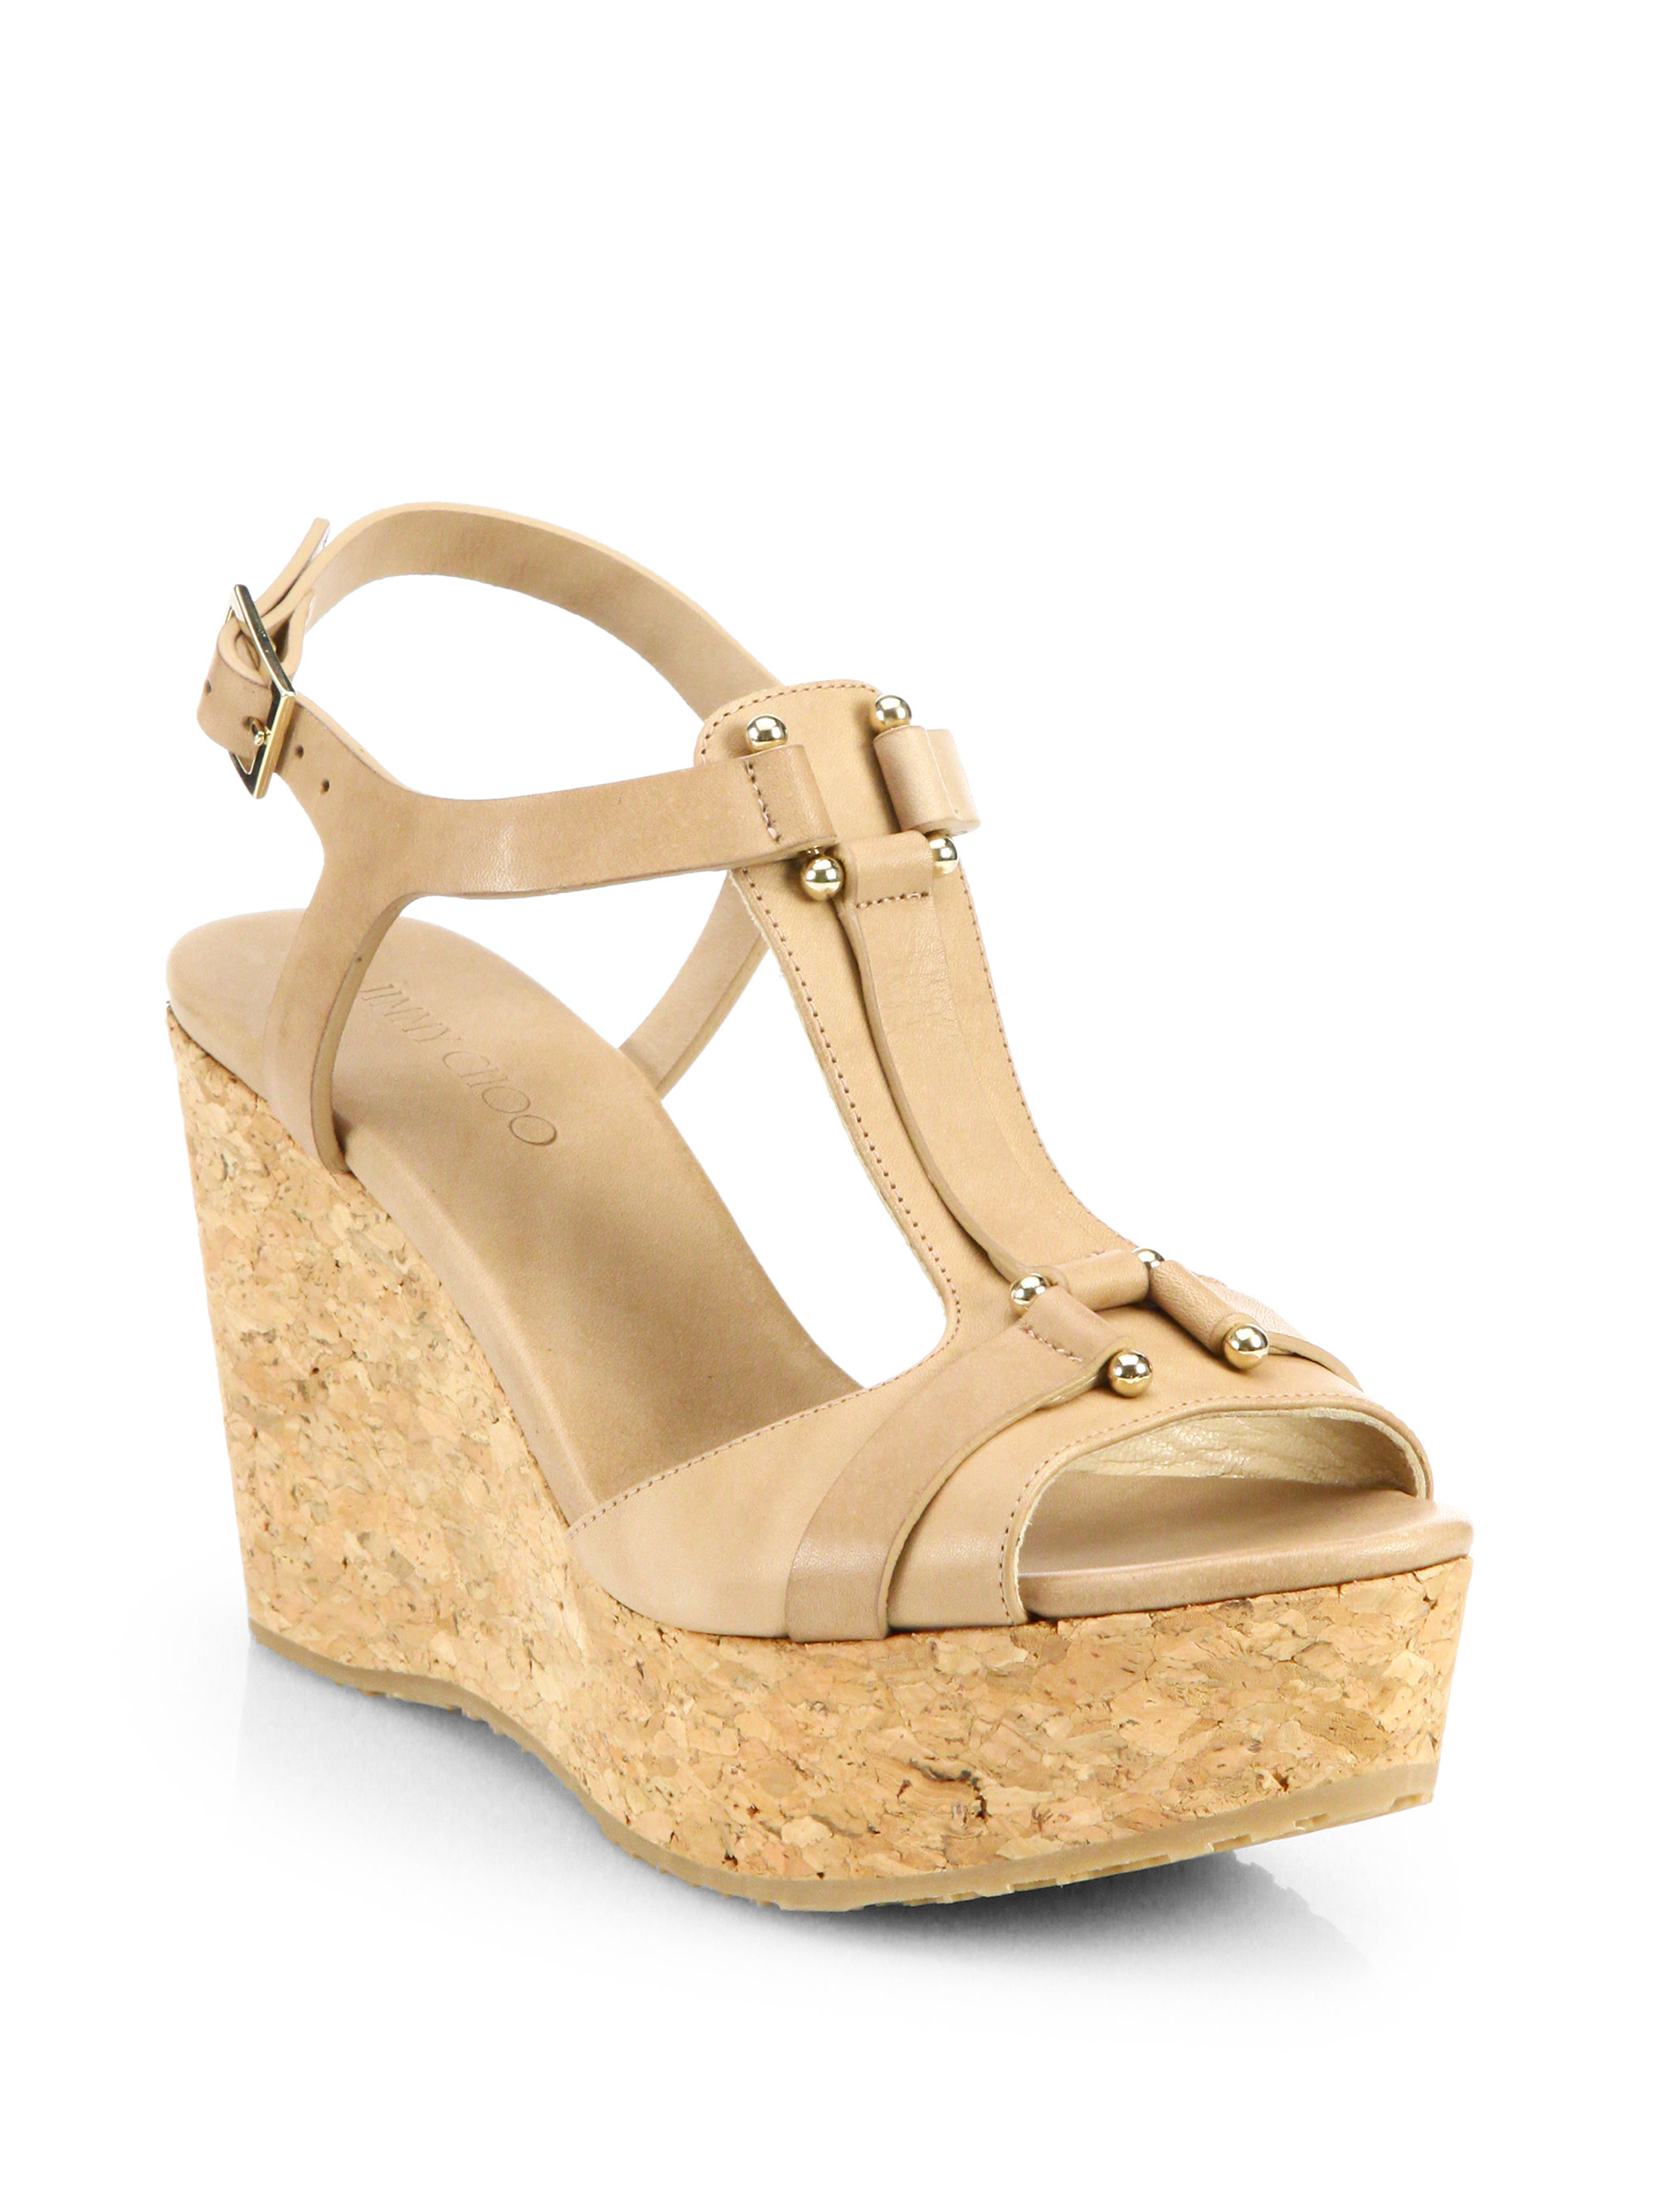 57dd598f5ebb Lyst - Jimmy Choo Pilar Leather Cork Wedge Sandals in Natural